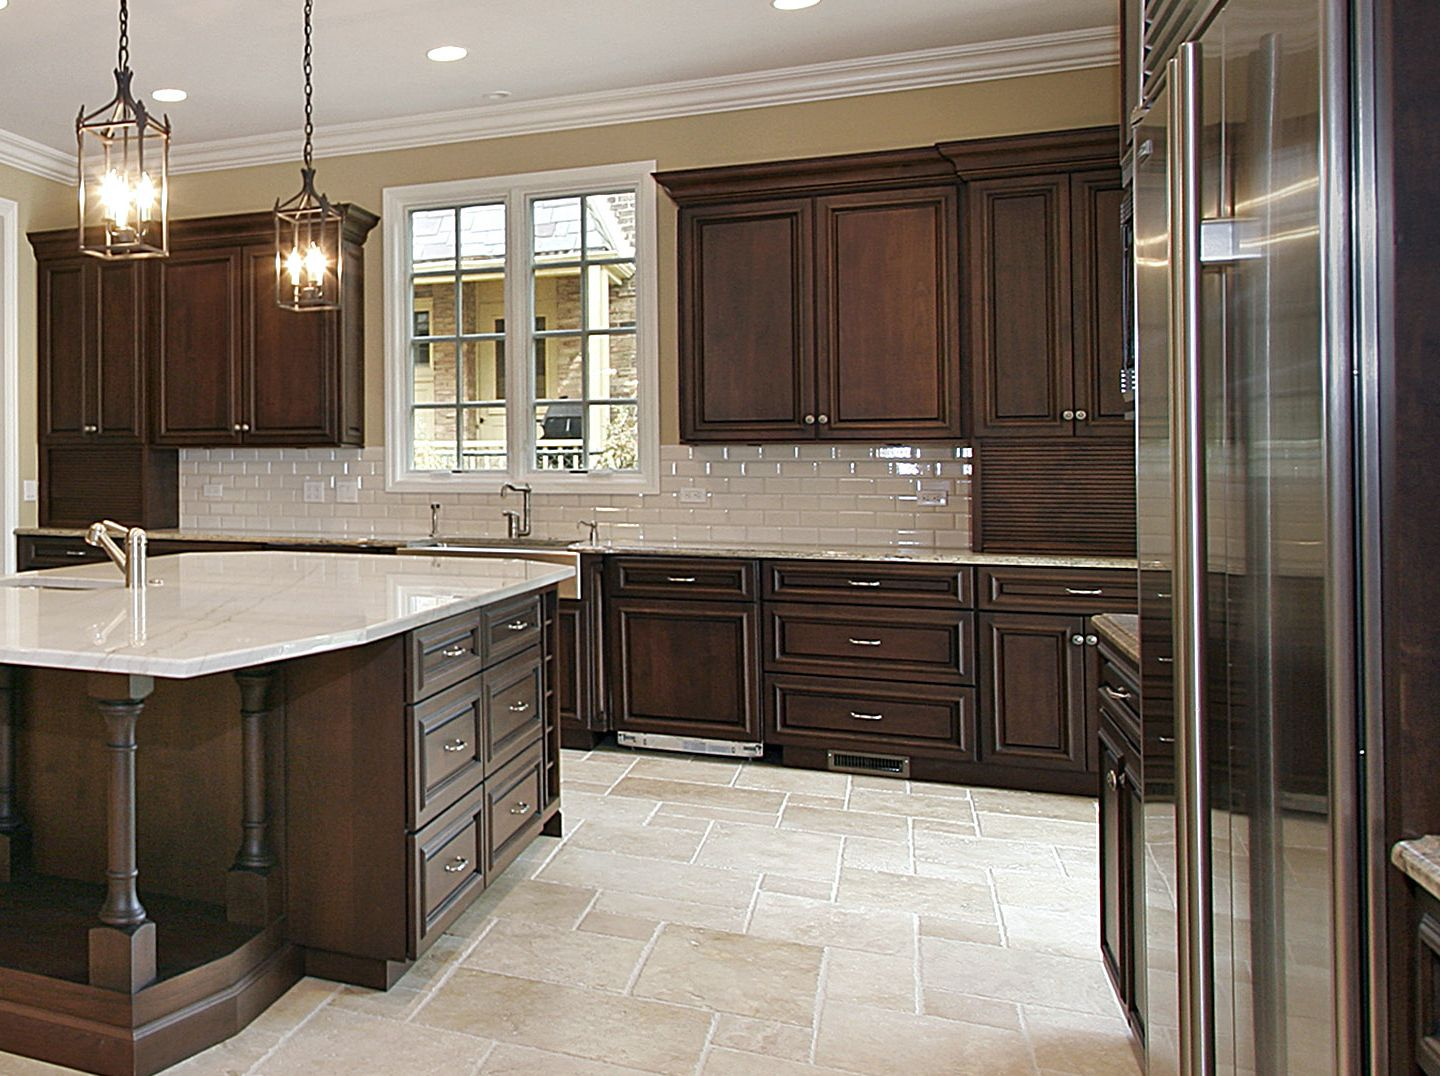 classic dark cherry kitchen with large island www. Black Bedroom Furniture Sets. Home Design Ideas